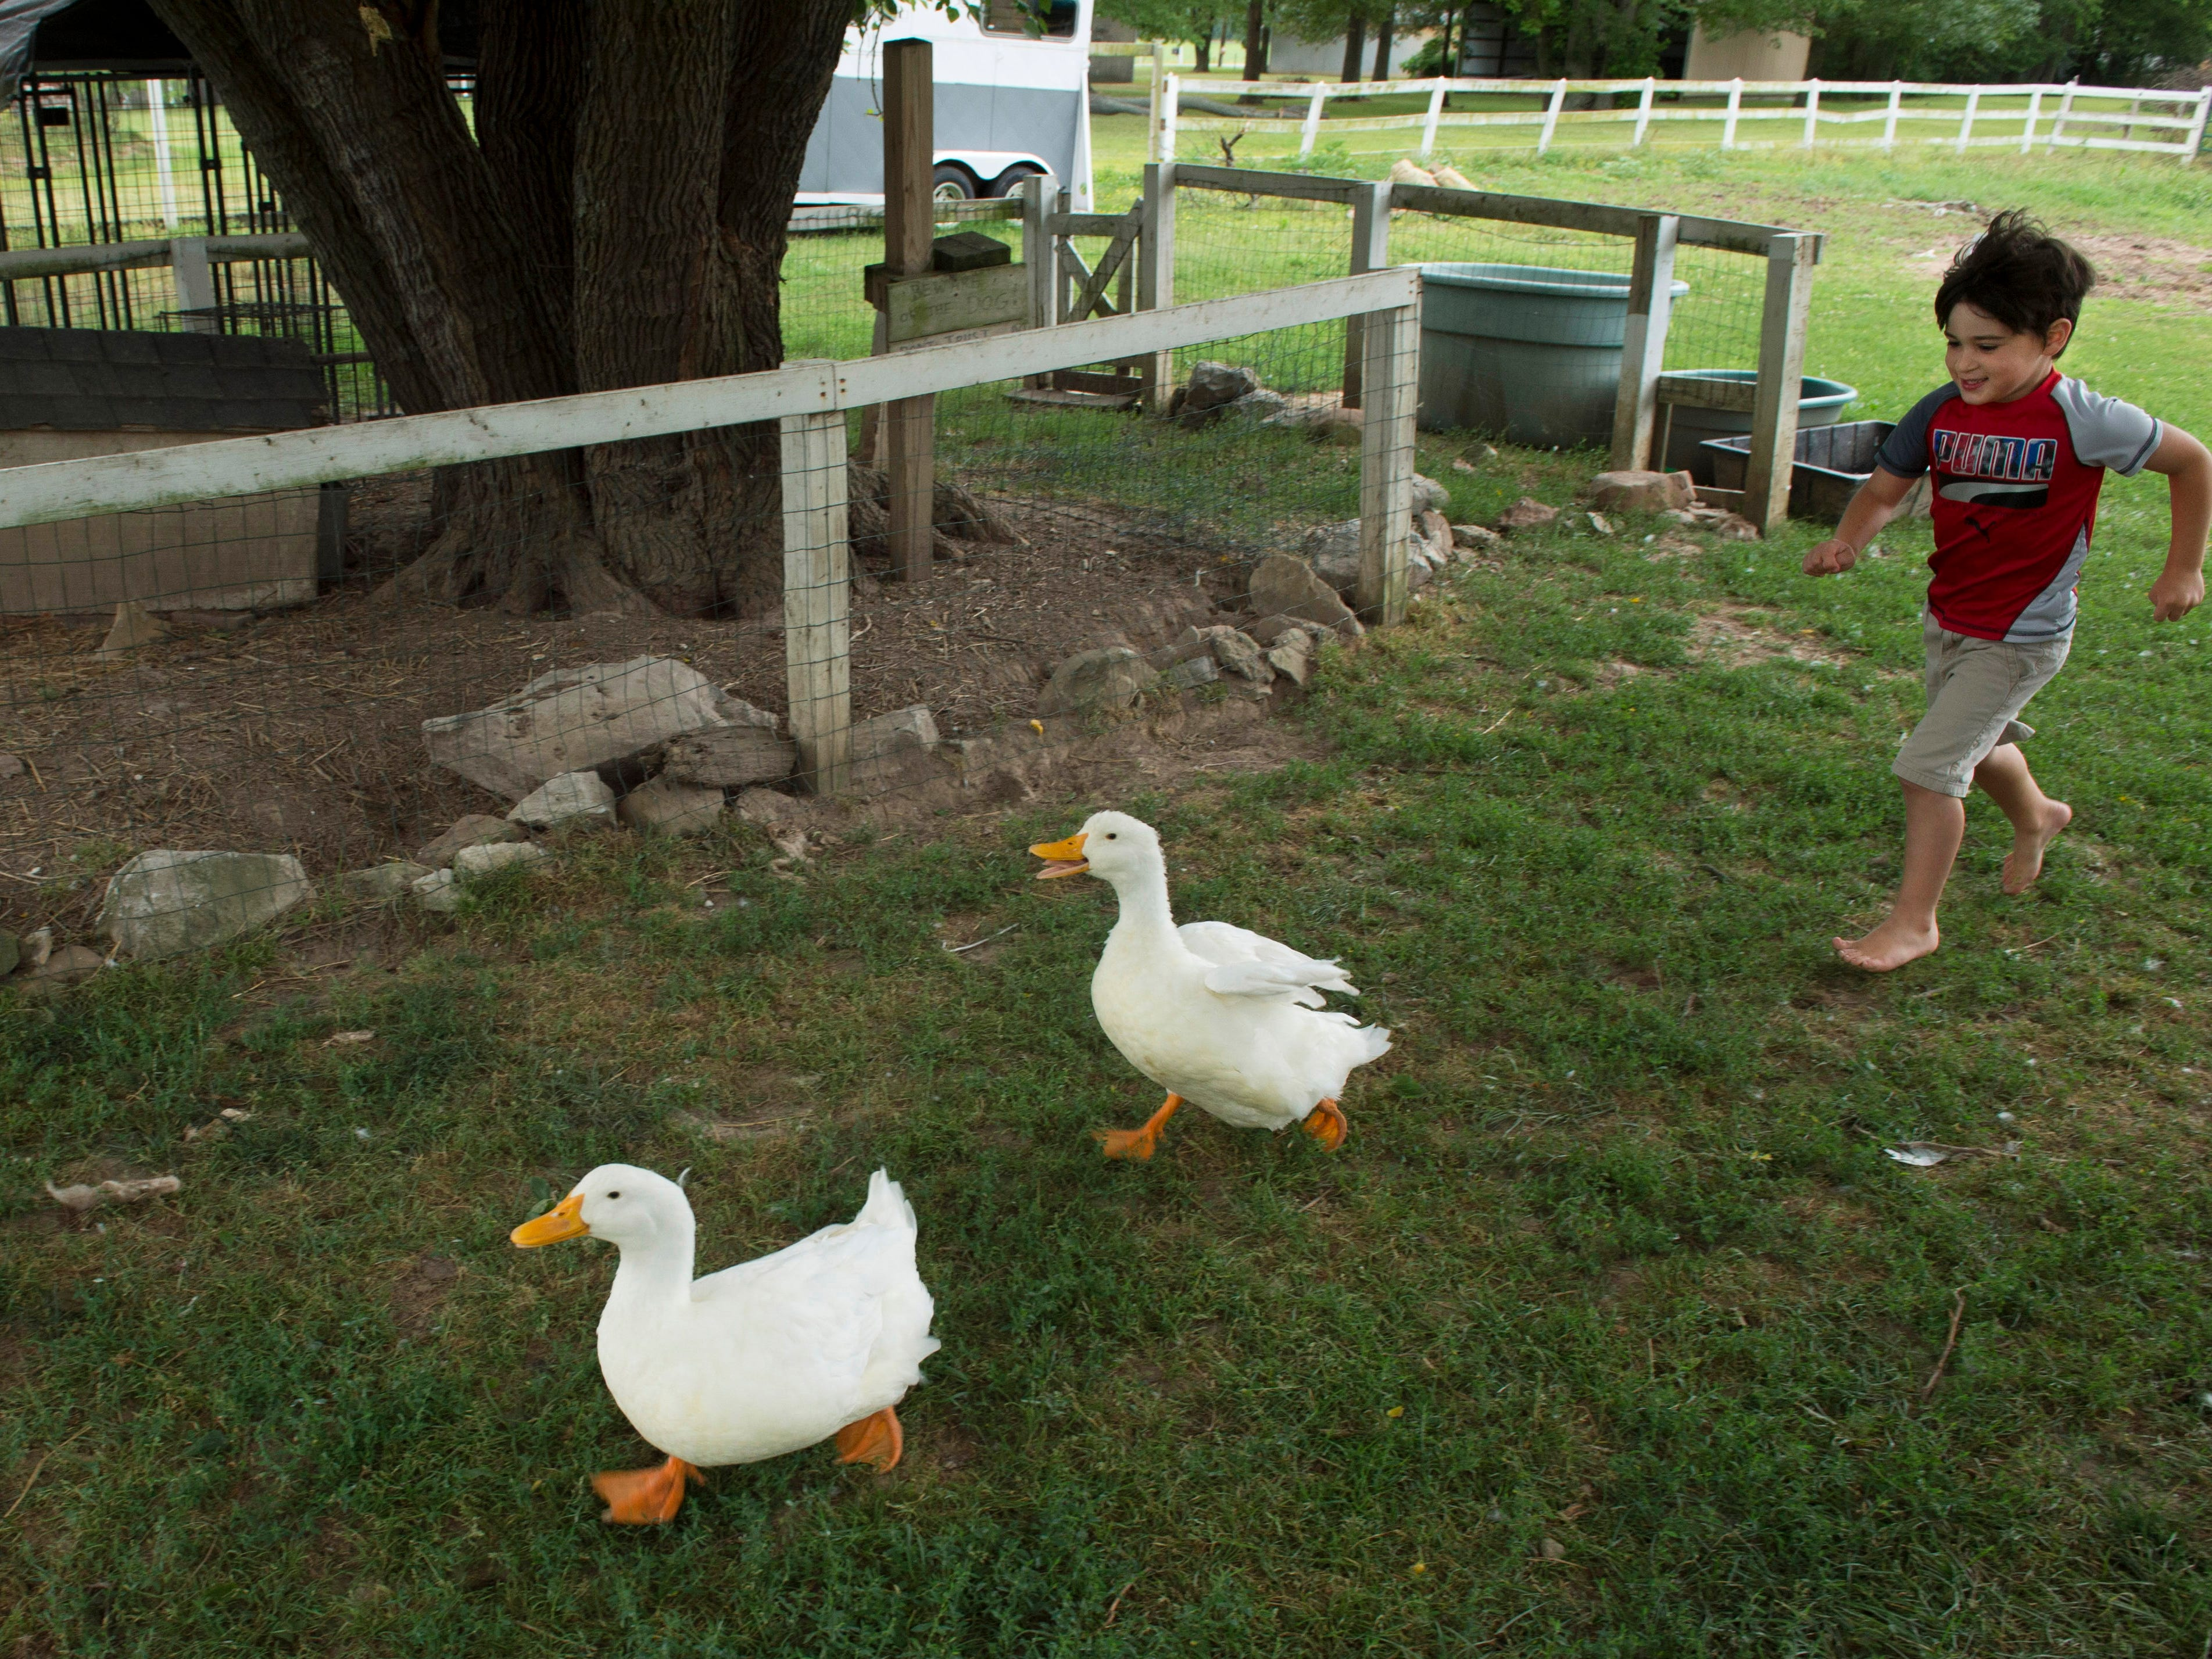 Leland keeps himself and the ducks busy whenever he visits his aunt's farm in Elberfeld, Ind. His mom, Amanda Smith, and he moved in with Rosanna Funkhouser's family for a few months after her mother died in March of 2017.